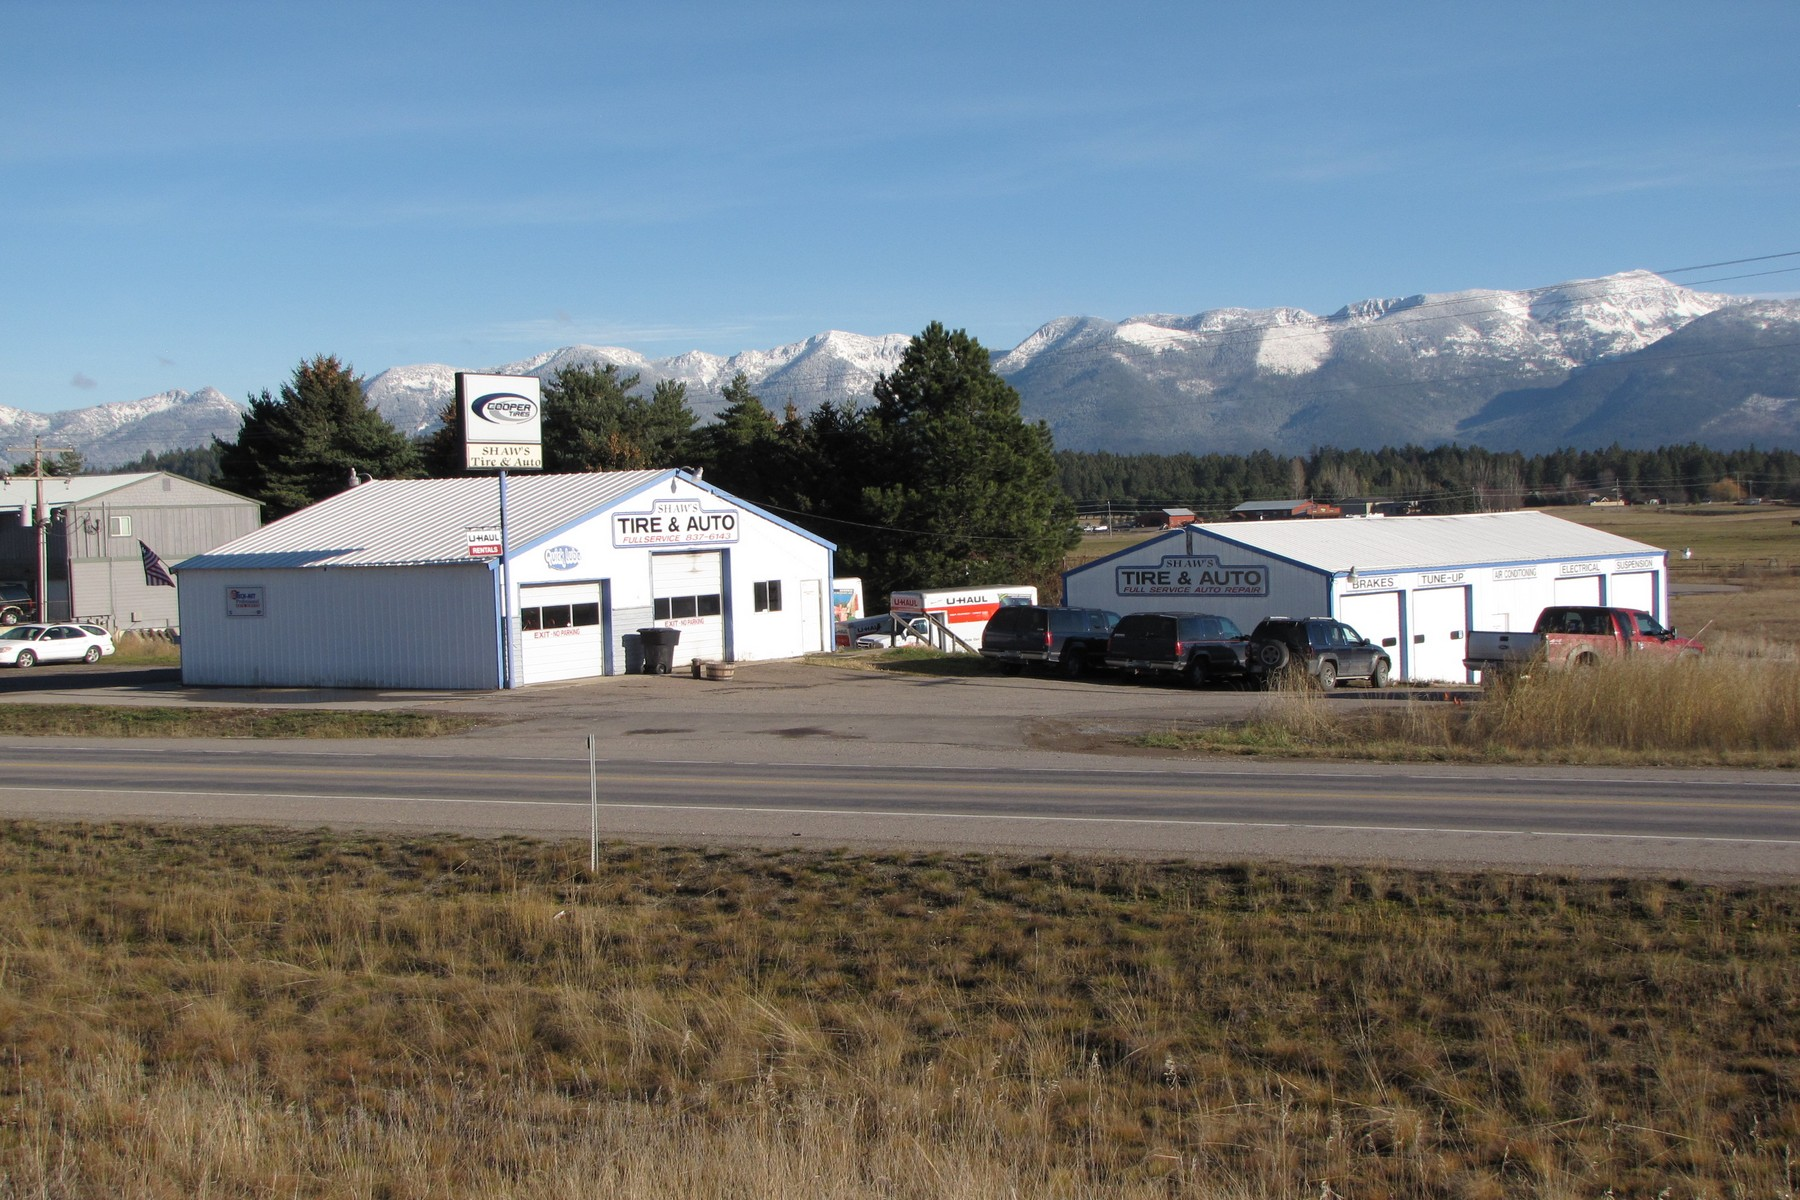 Commercial for Sale at 7595 MT-35 Highway , land & bldg, Bigfork, MT 5991 7595 MT-35 Hwy land & bldg Bigfork, Montana 59911 United States